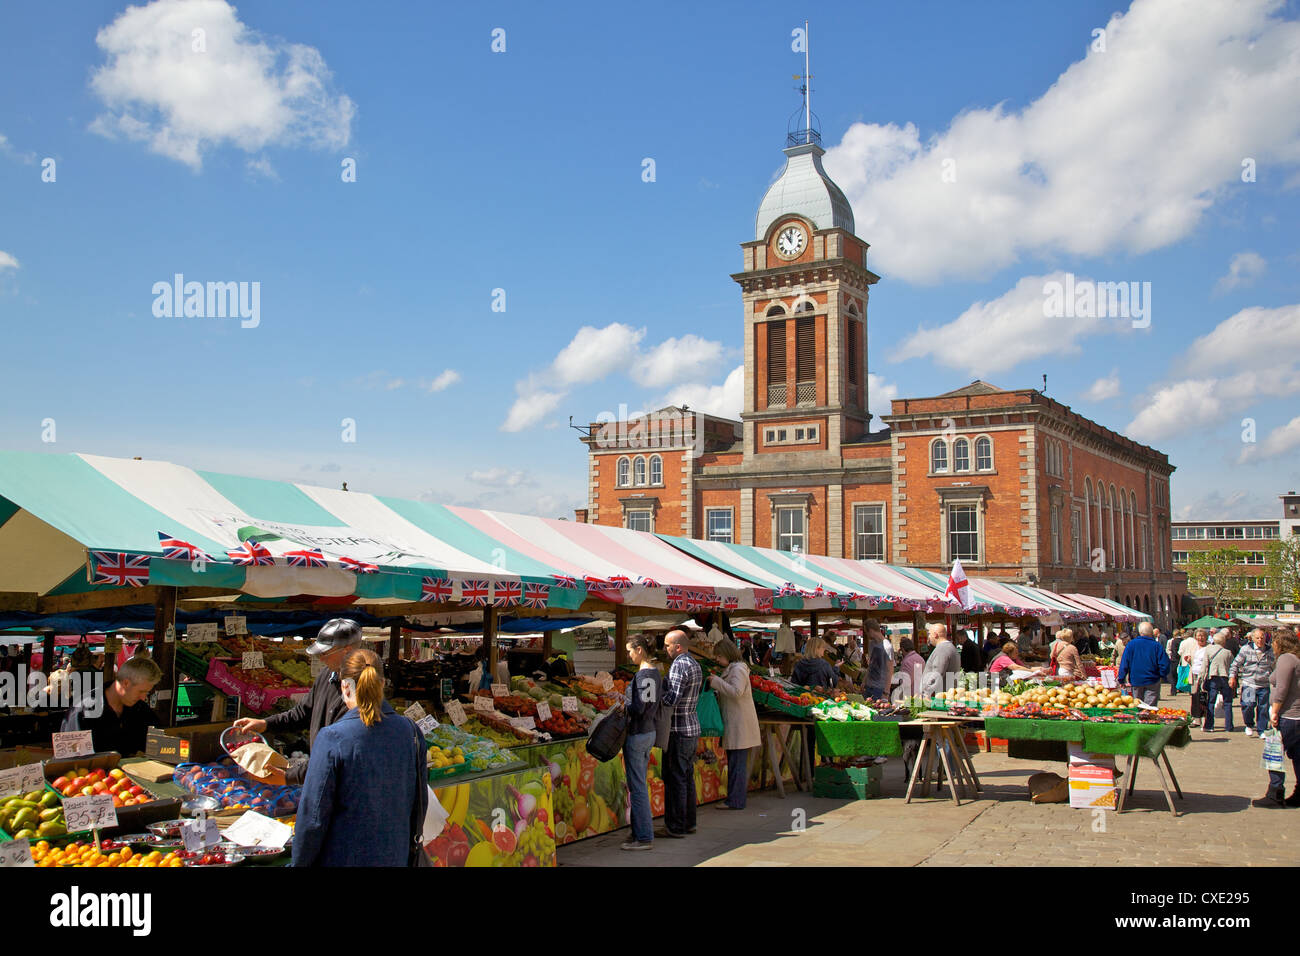 Market Hall and market stalls, Chesterfield, Derbyshire, England, United Kingdom, Europe - Stock Image